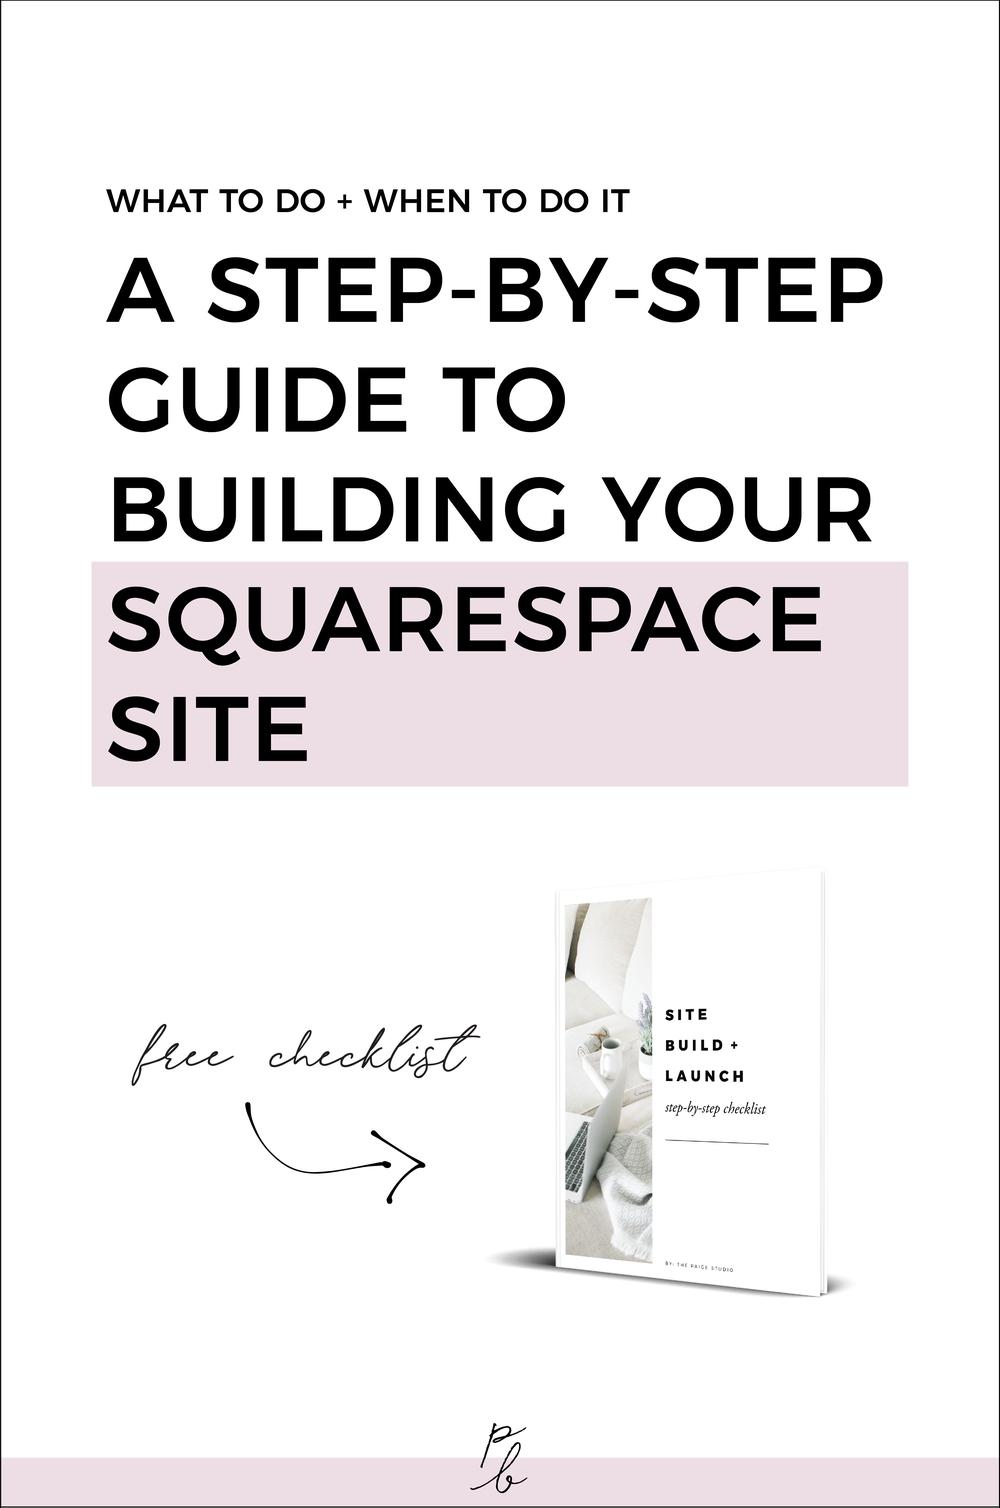 What to do and when to do it, a step by step guide to building your squarespace site.png